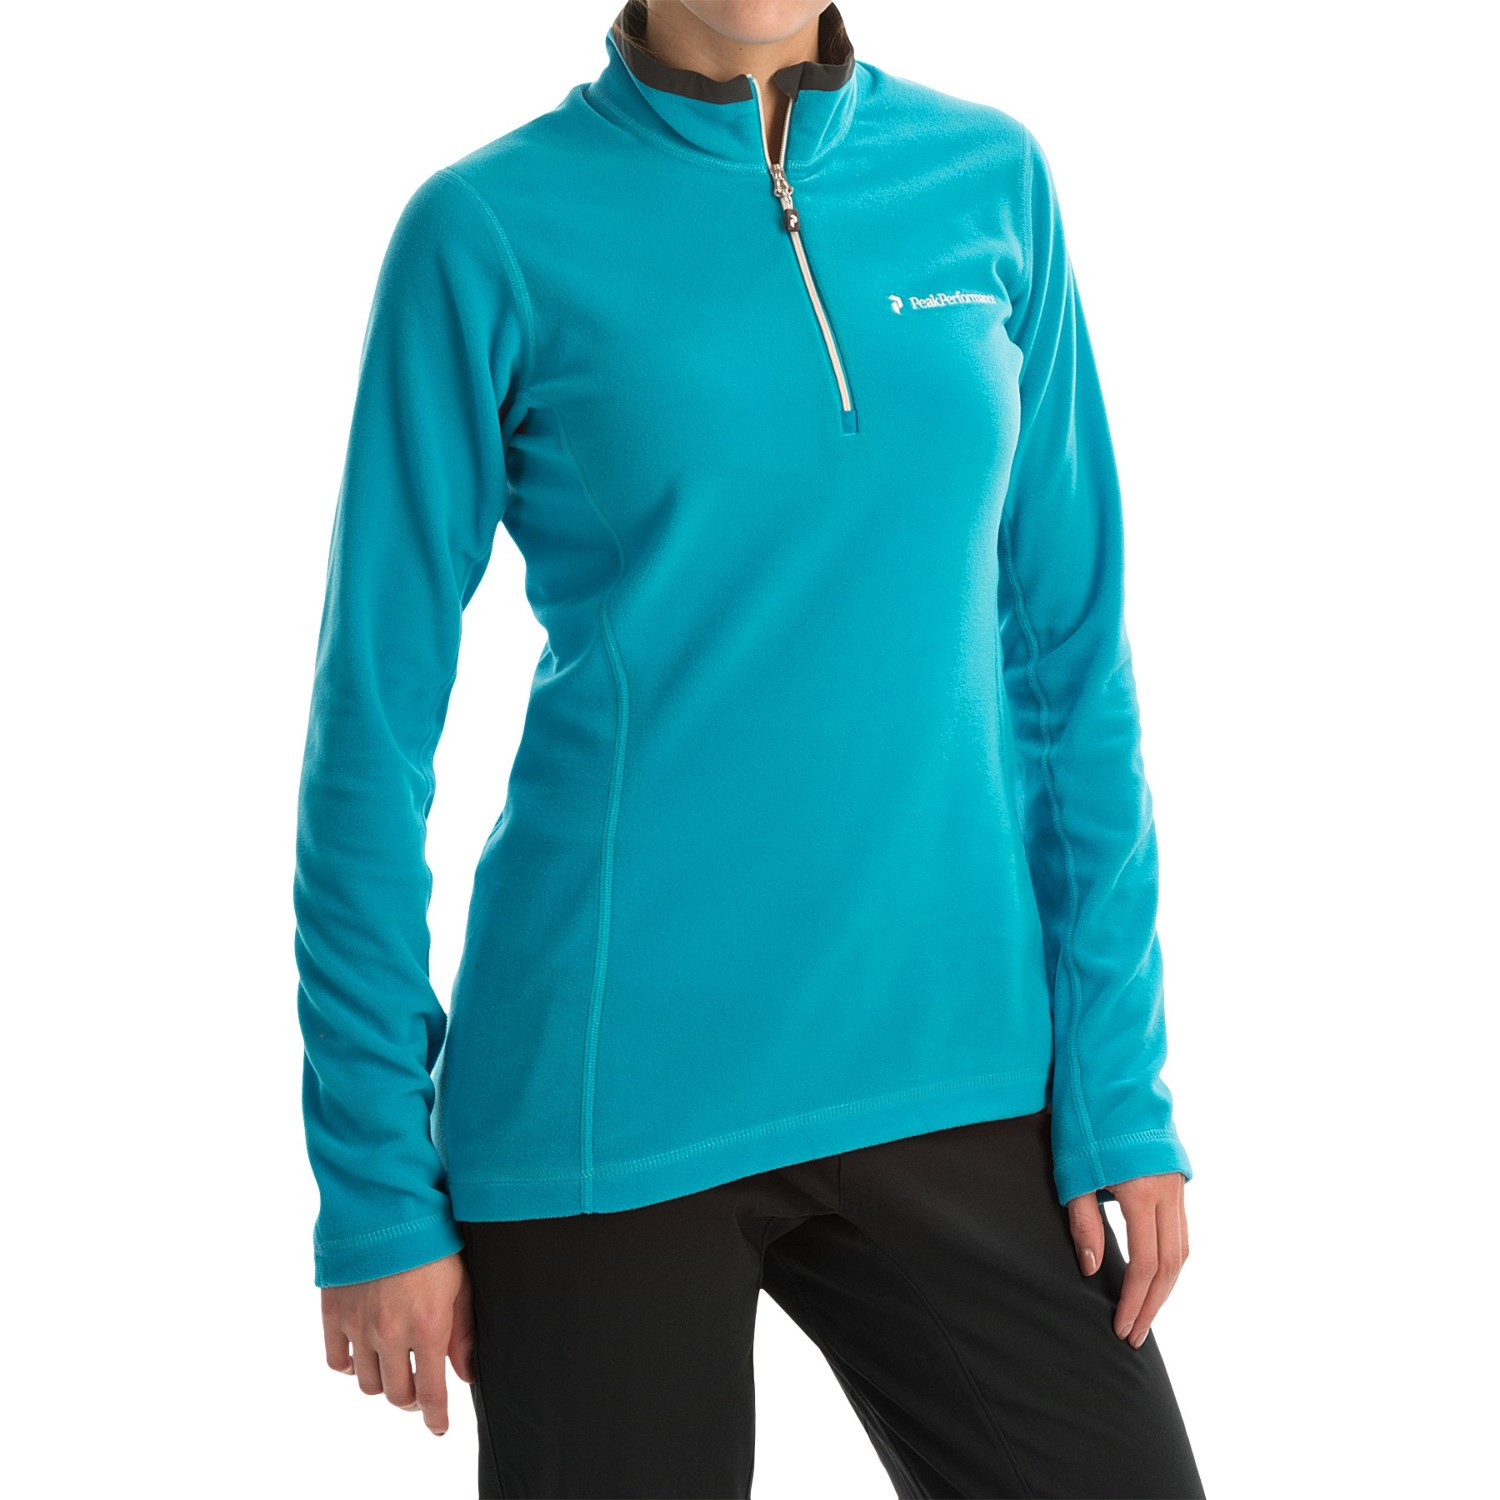 Peak performance light micro pullover shirt for women for Lightweight breathable long sleeve shirts